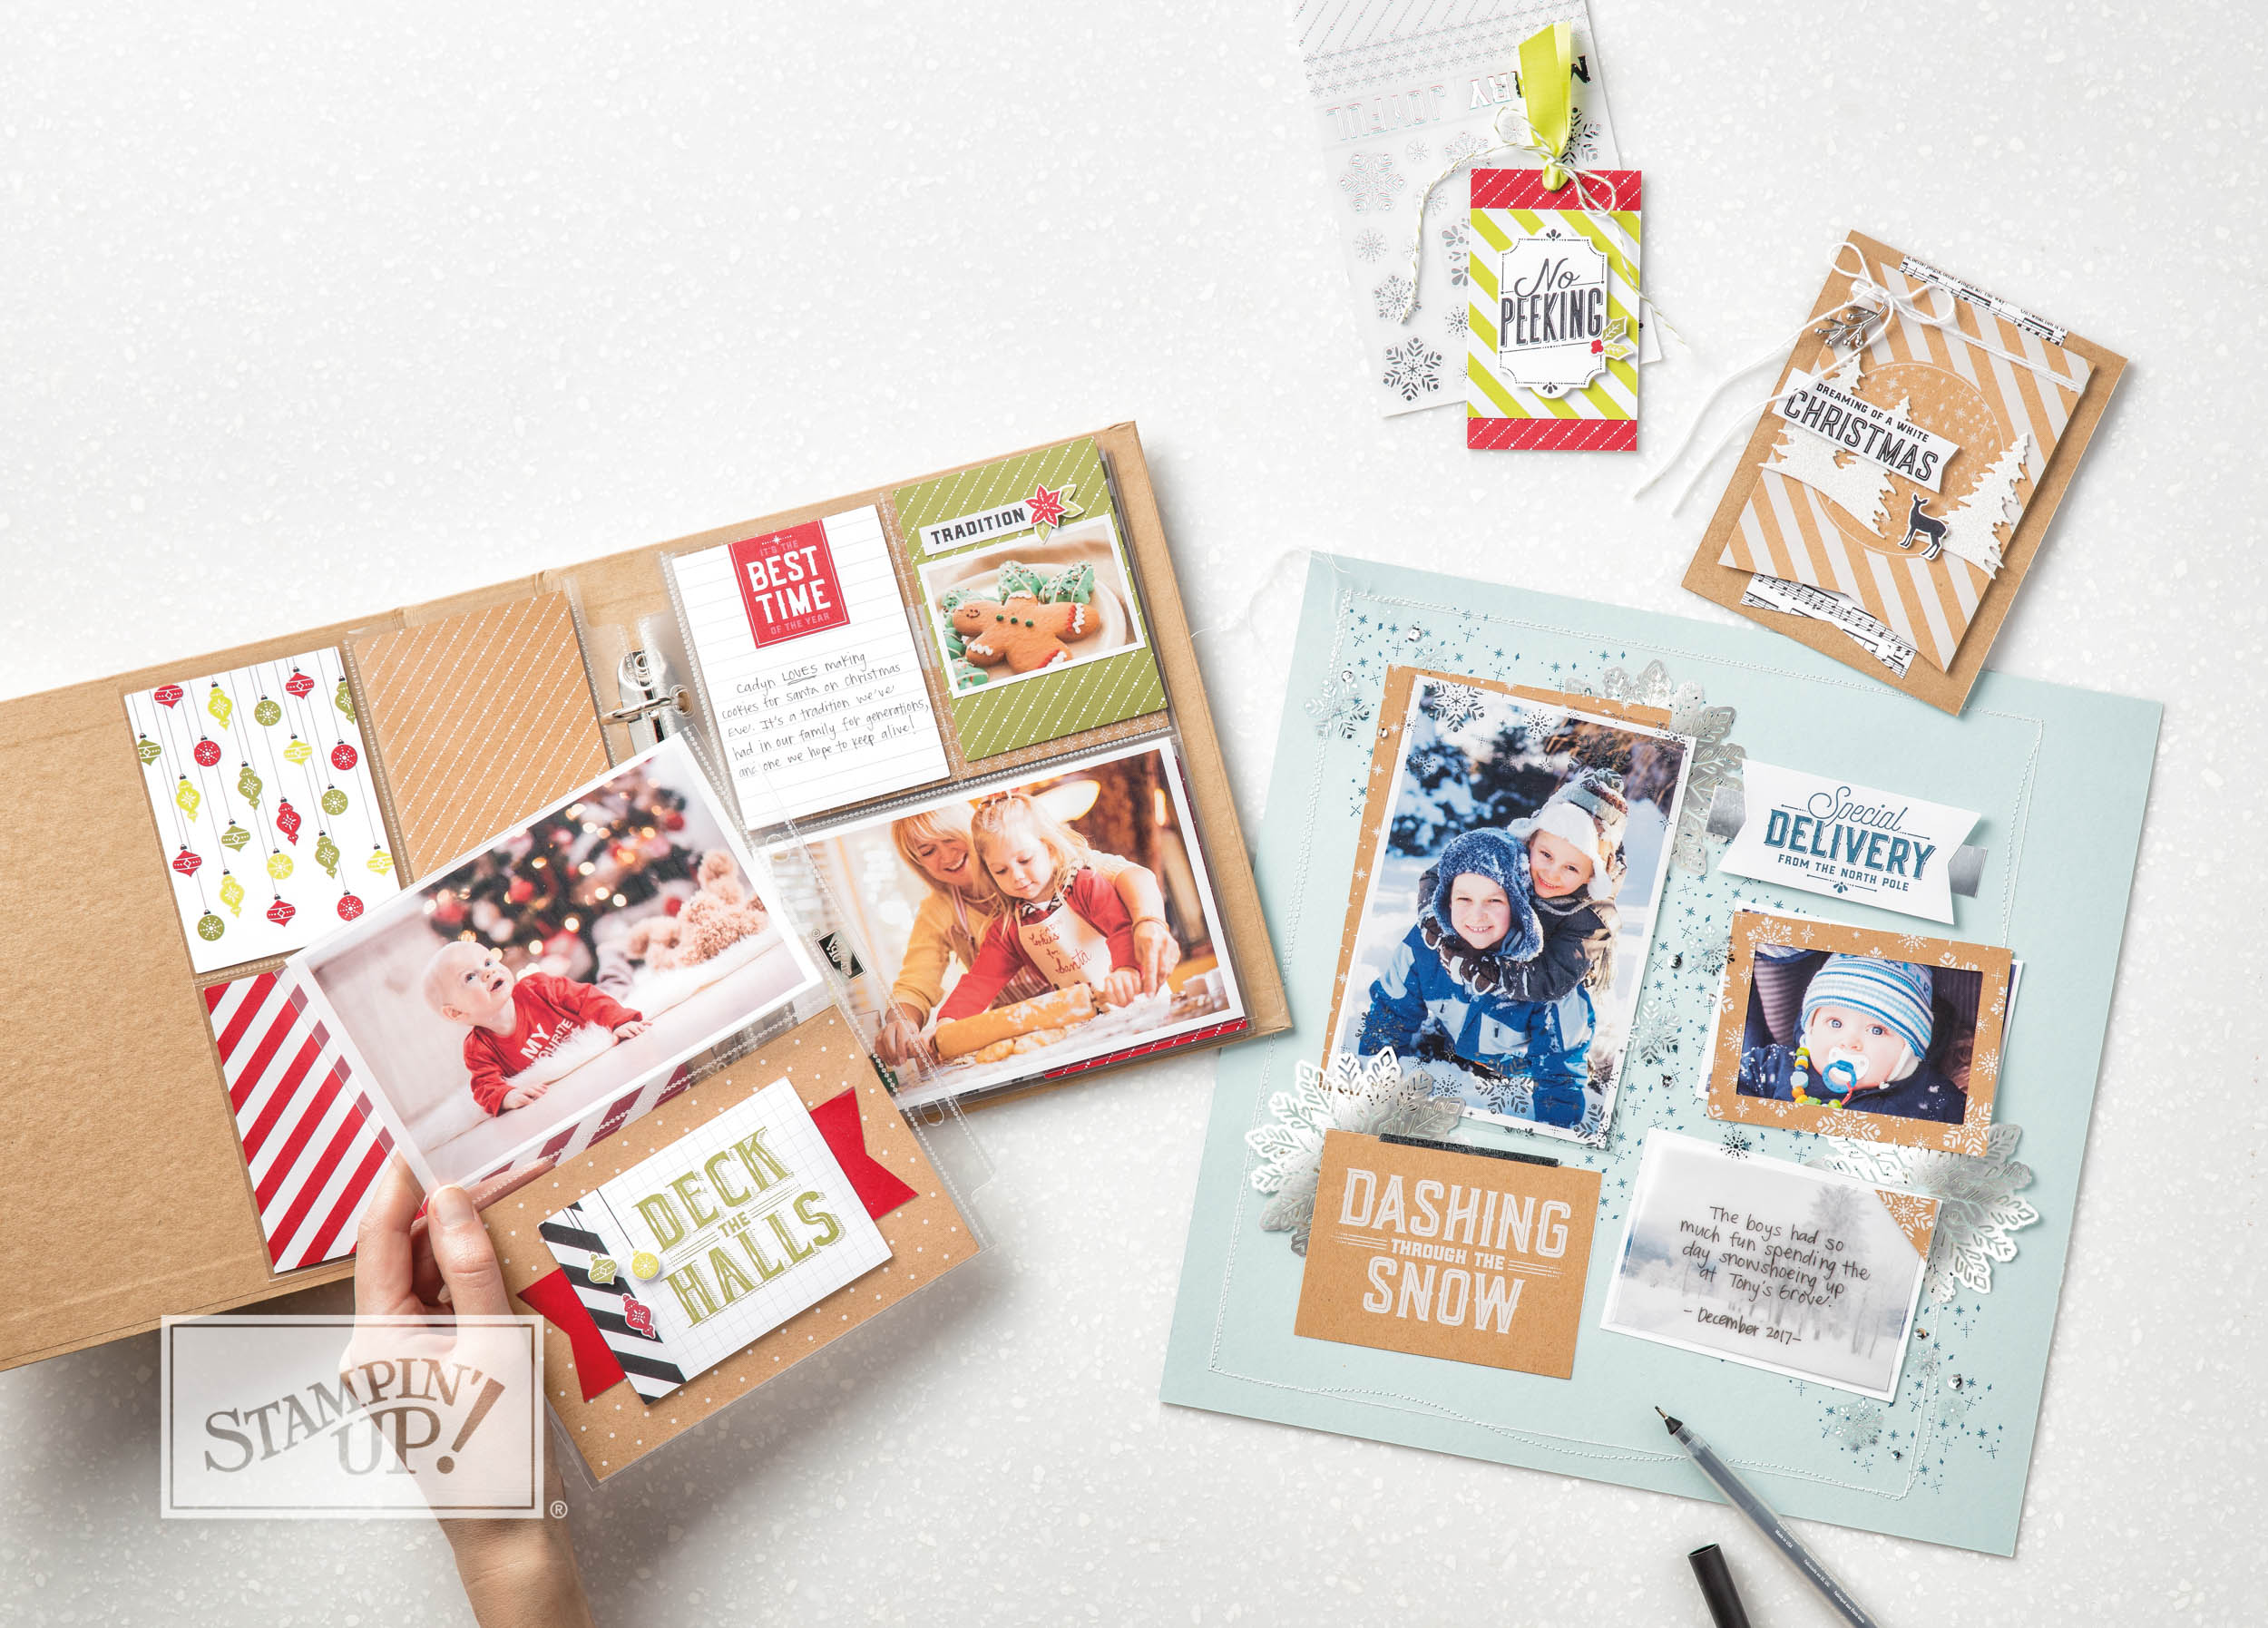 Merry Little Christmas memories & More with Wendy Lee, Stampin Up, stamping,hand made, holiday cards and gifts, stamping, #creativeleeyours, creatively yours,scrapbooking, memory keeping